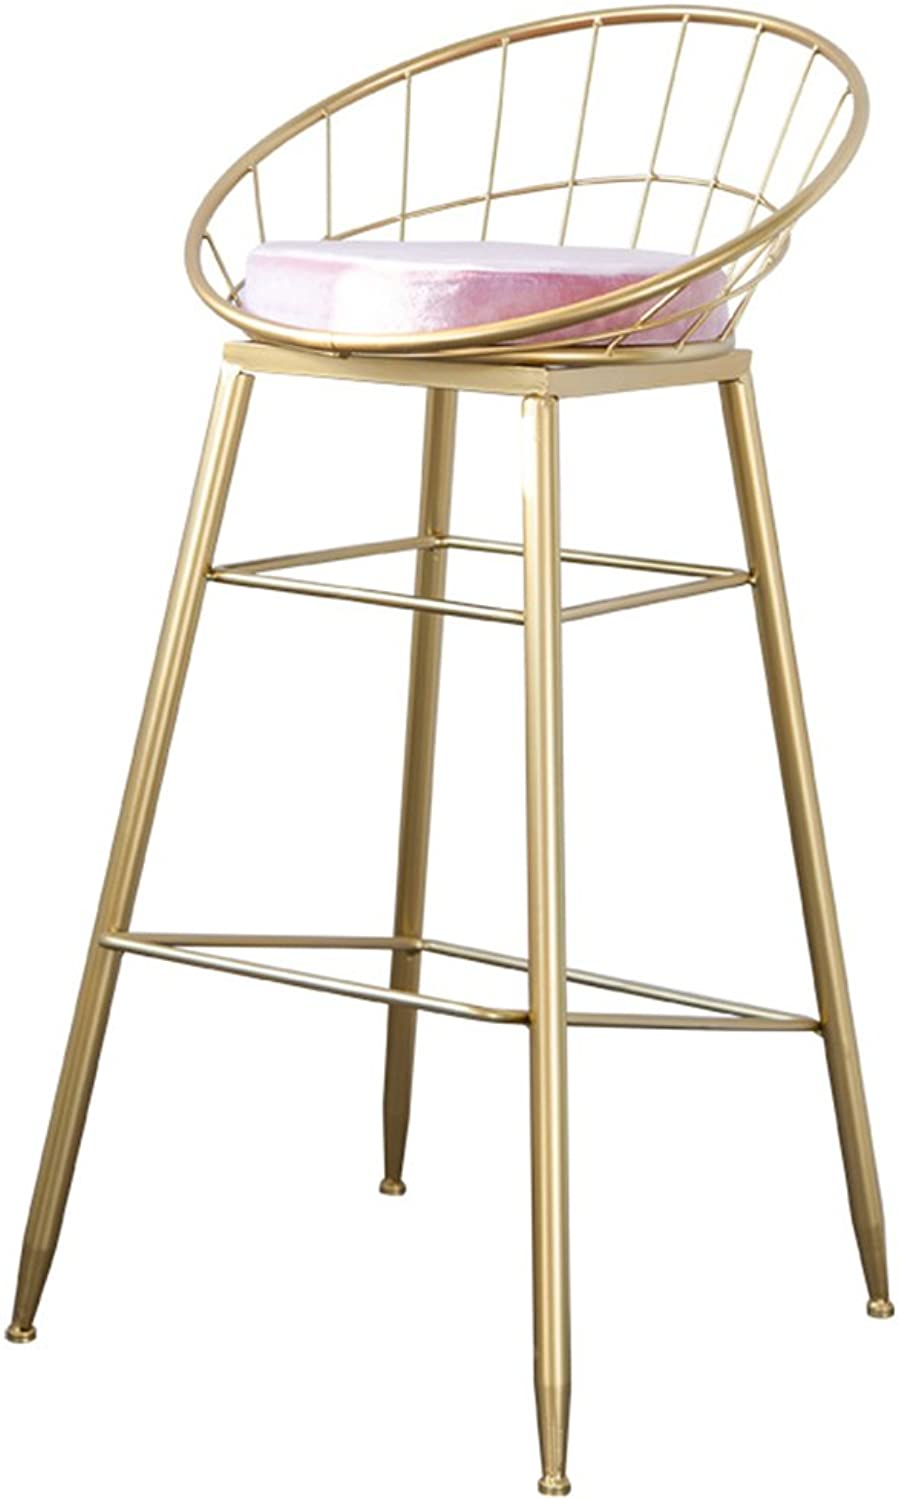 Iron Art Bar Chair, Home Northern Europe Style Armchair golden Bar Stool Bar Stool Bar Chair High Stool Casual High Chair Table Stool Decorative Stool Height 75CM (color   Pink, Size   65CM)